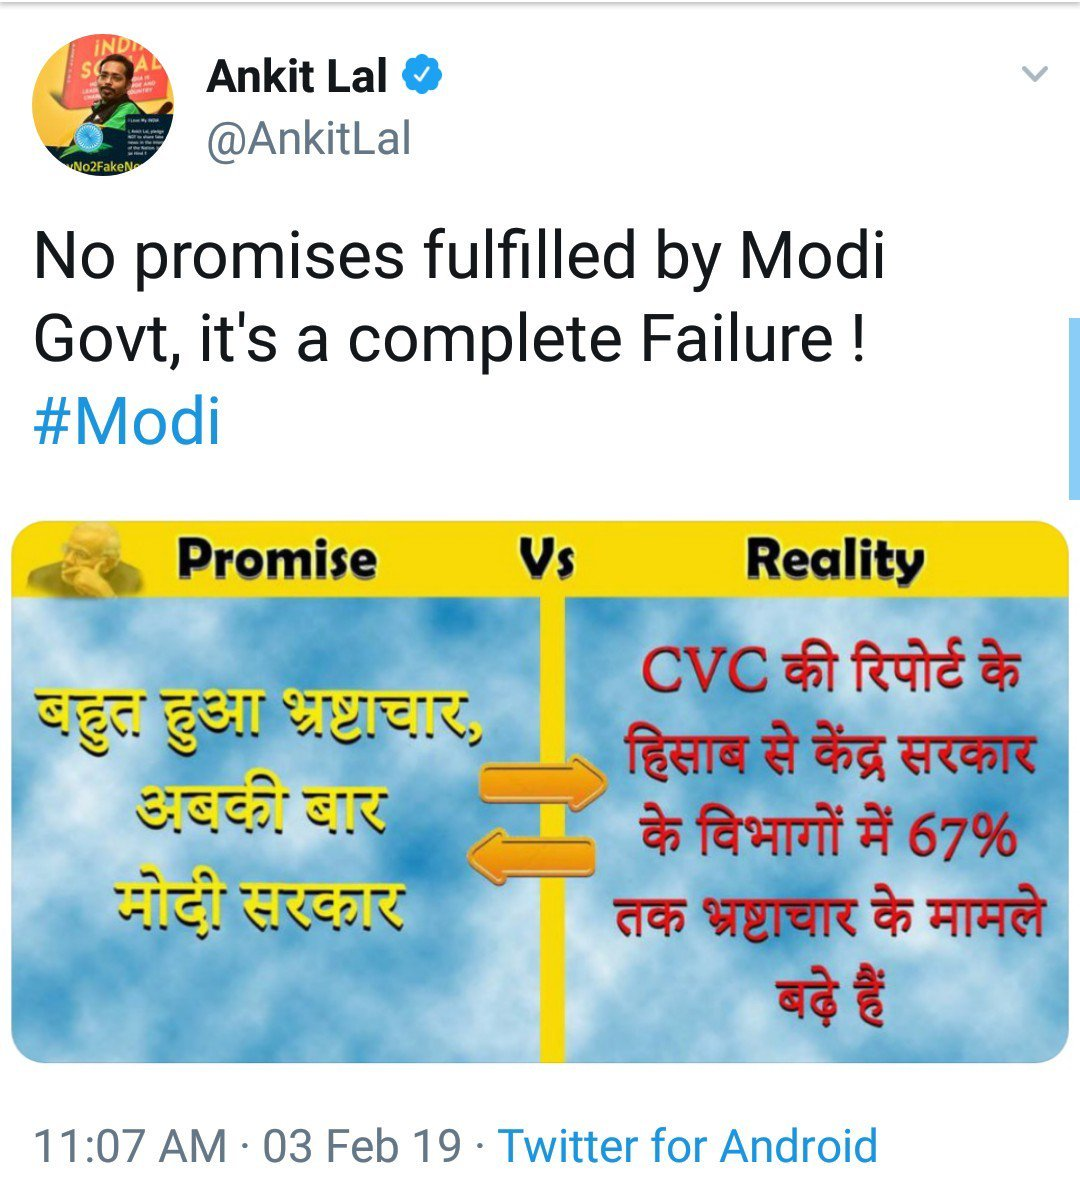 FACT CHECK: AAP's Ankit Lal shares partial information to